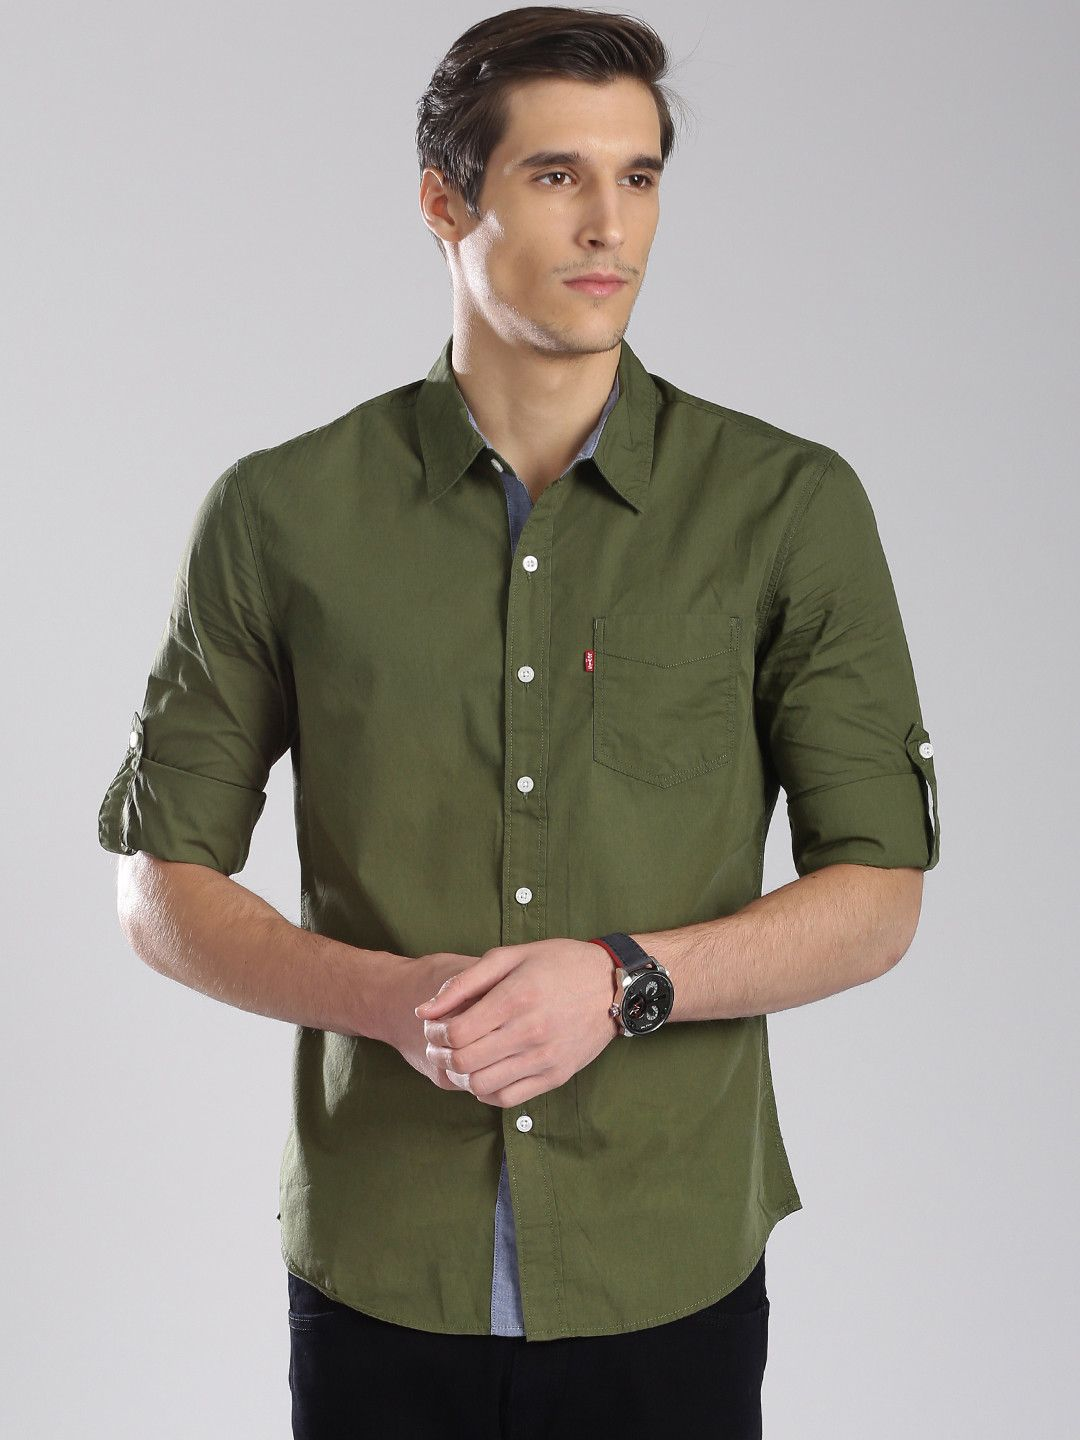 afb606438bf6 Levis Plain Slim Fit Casual Wear Olive Green Cotton Mens Shirt ...